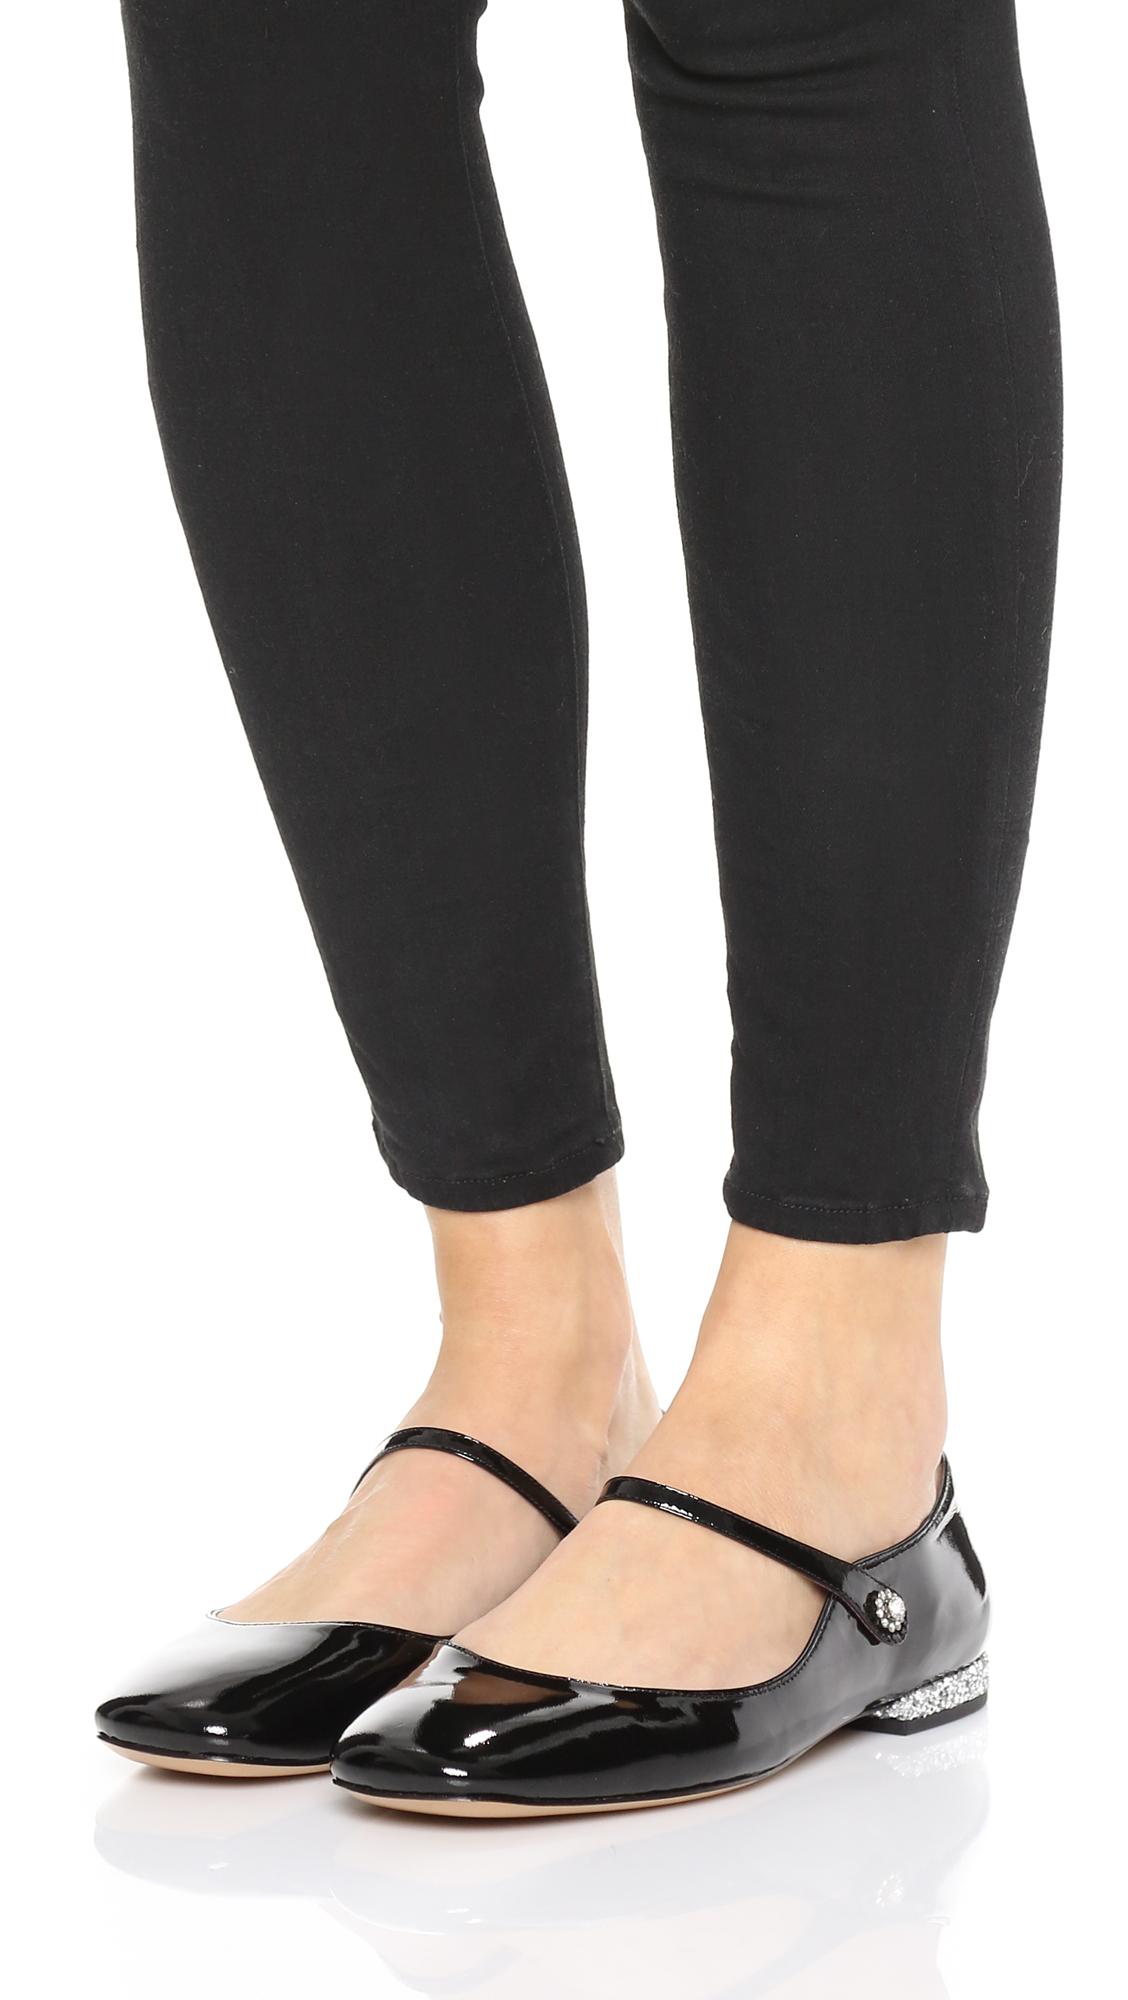 Marc by marc jacobs Brooke Mary Jane Flats in Black | Lyst